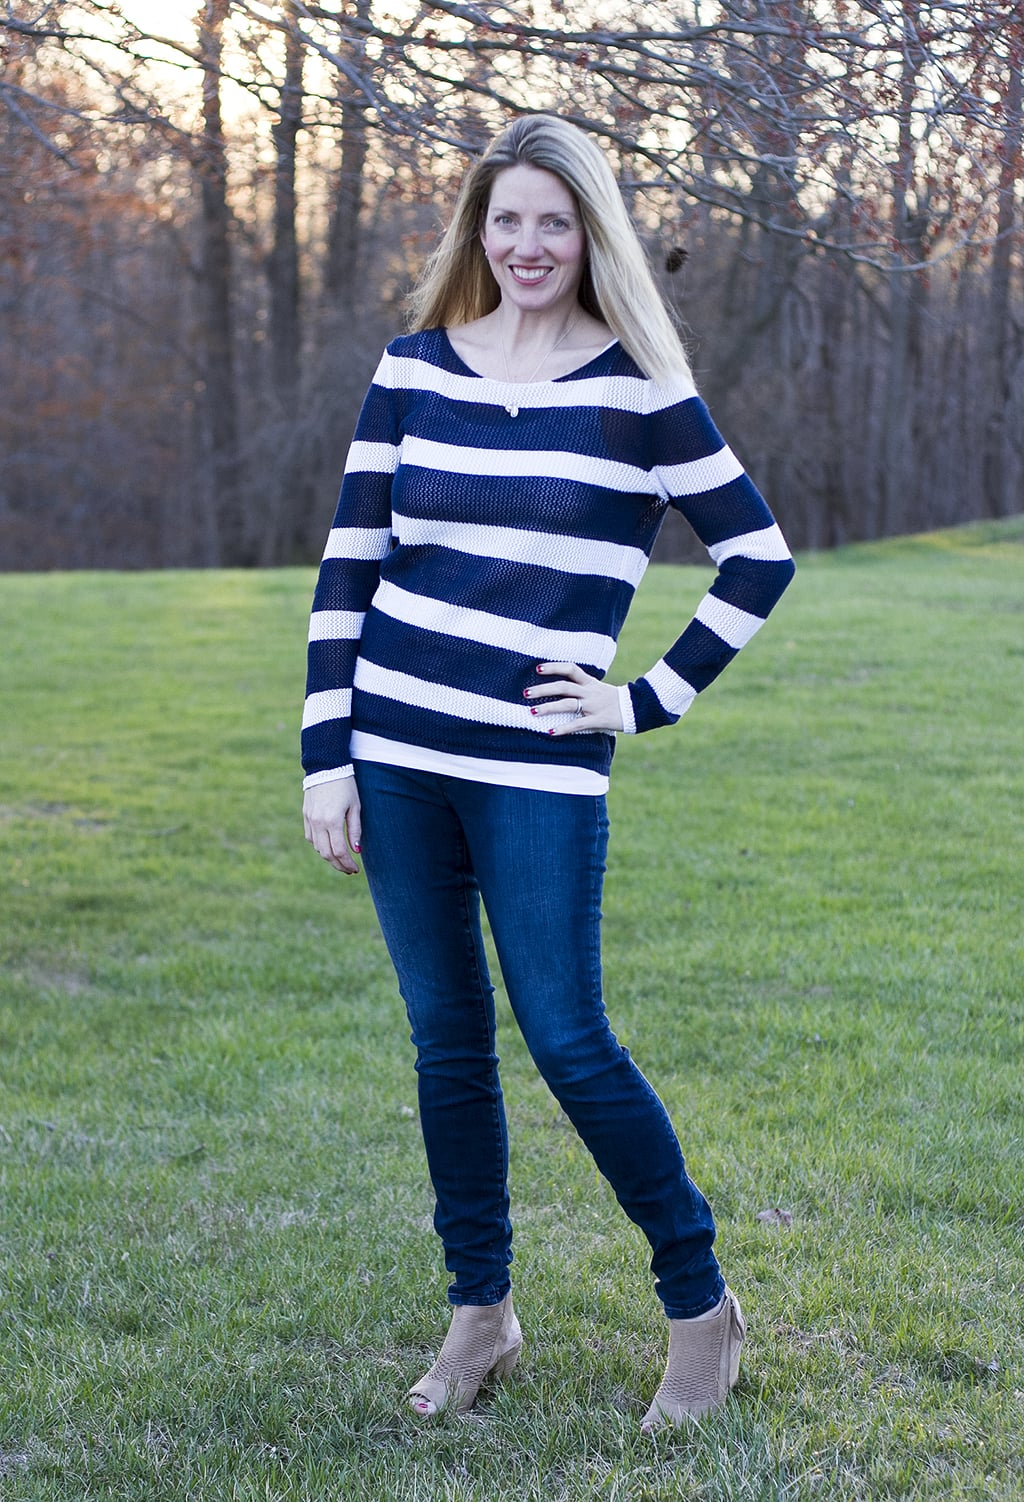 Nautical-Stripes-Date-Outfit